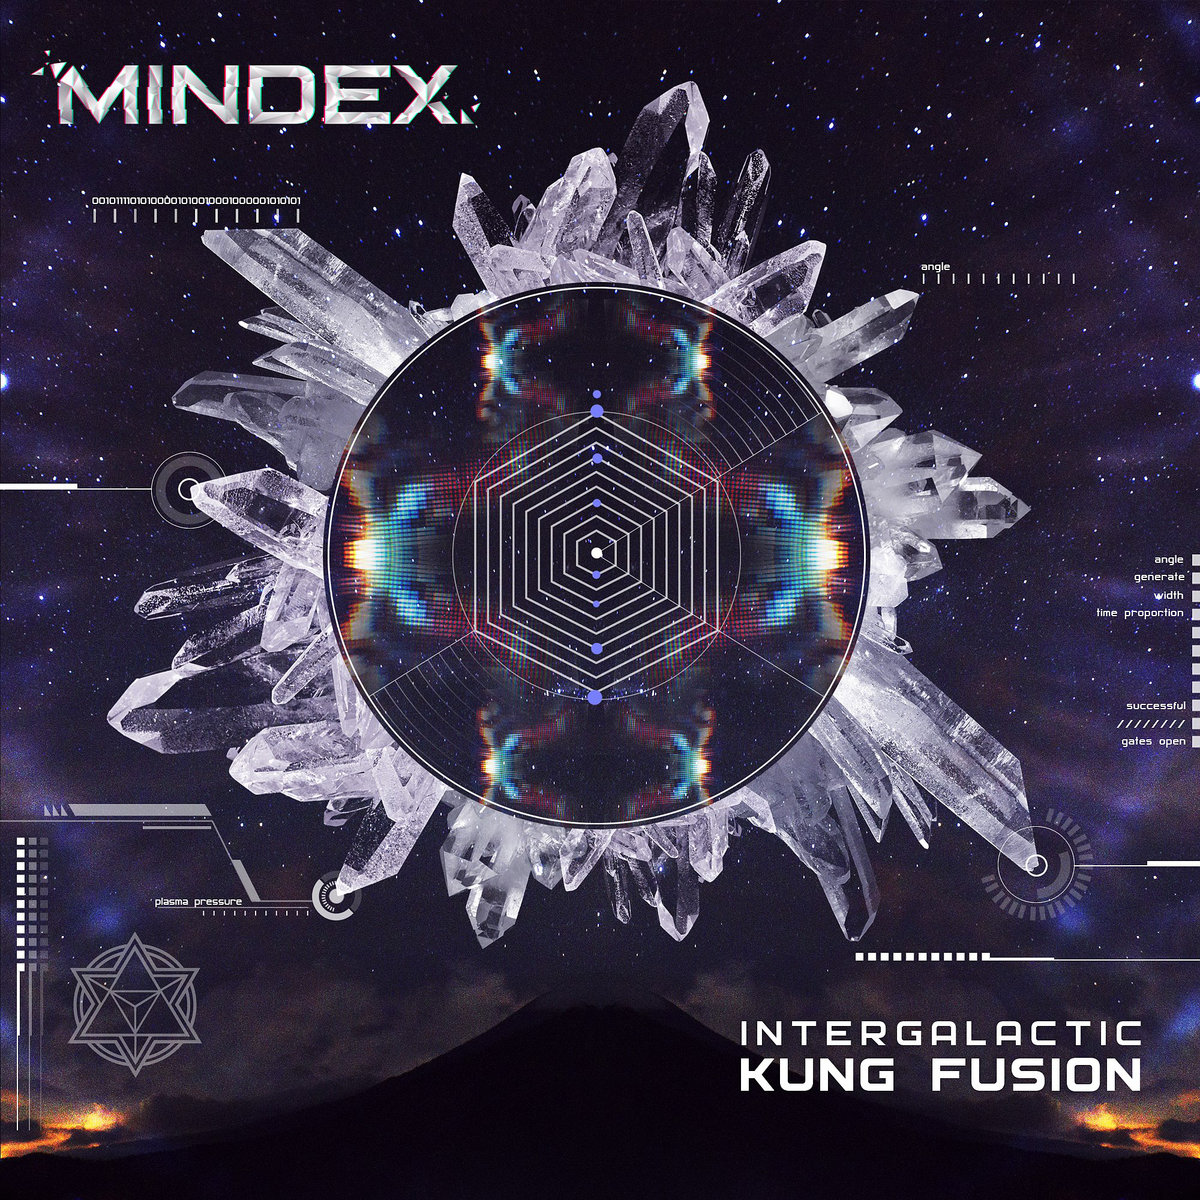 Mindex - Beauty and the Beast @ 'Intergalactic Kung Fusion' album (electronic, ambient)